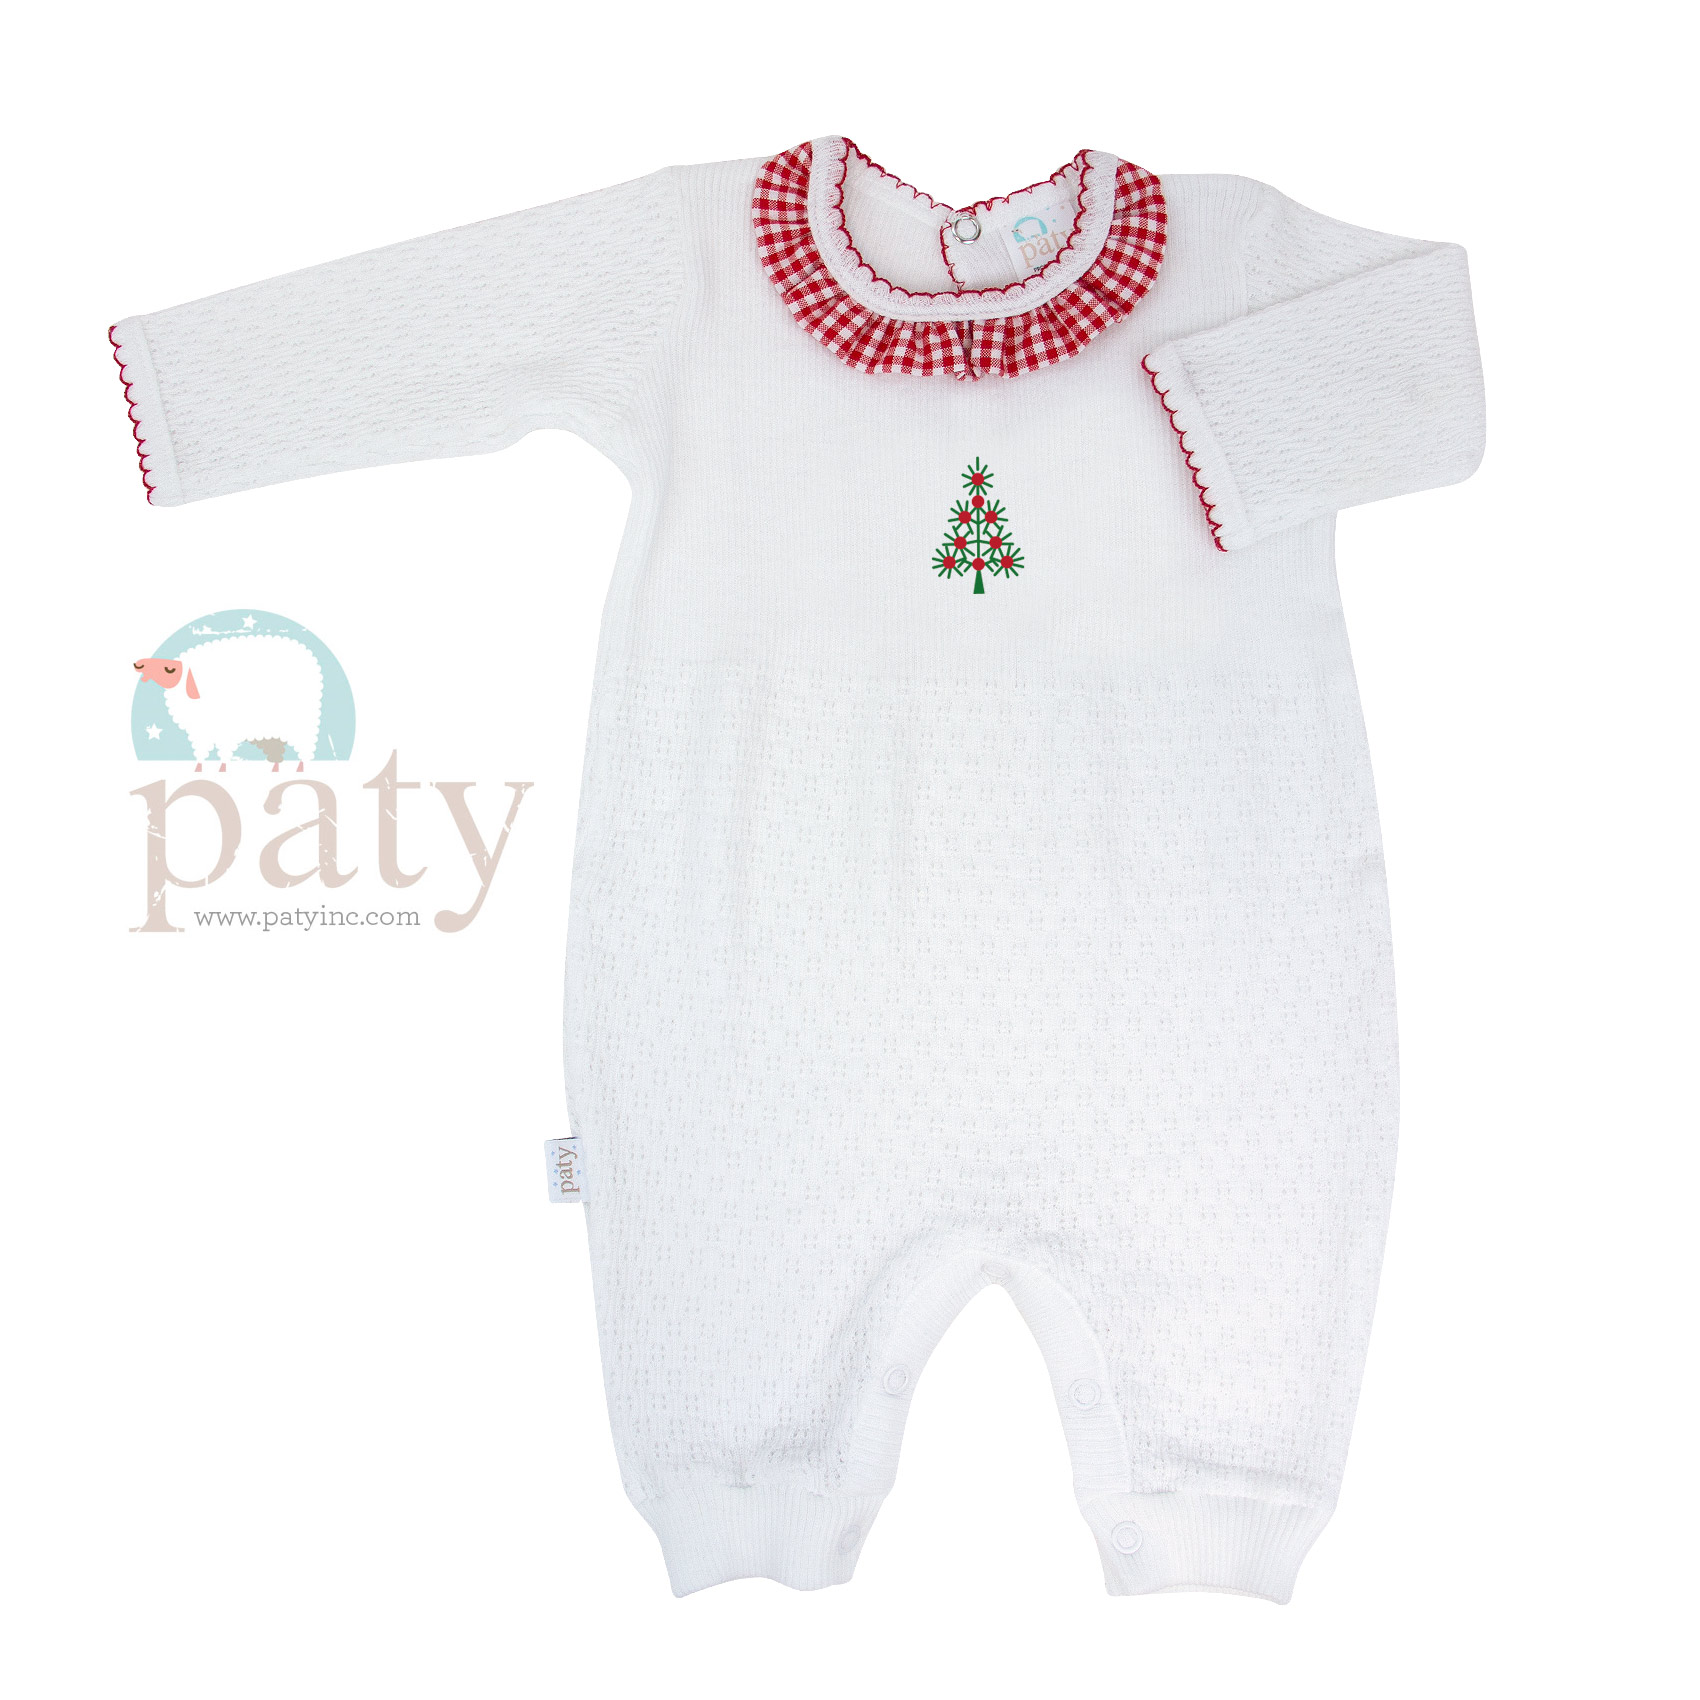 Romper w/ Collar & Christmas Tree Embroidery